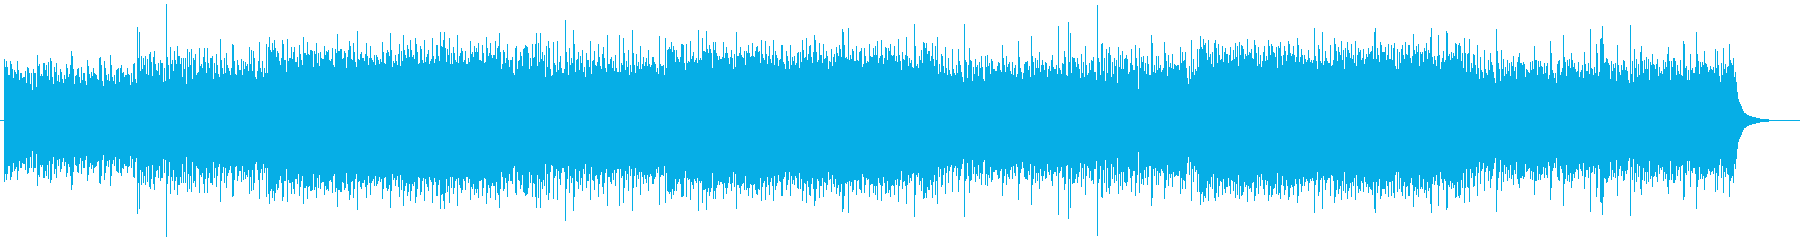 Refreshing, positive and transparent corporate background music's reproduced waveform